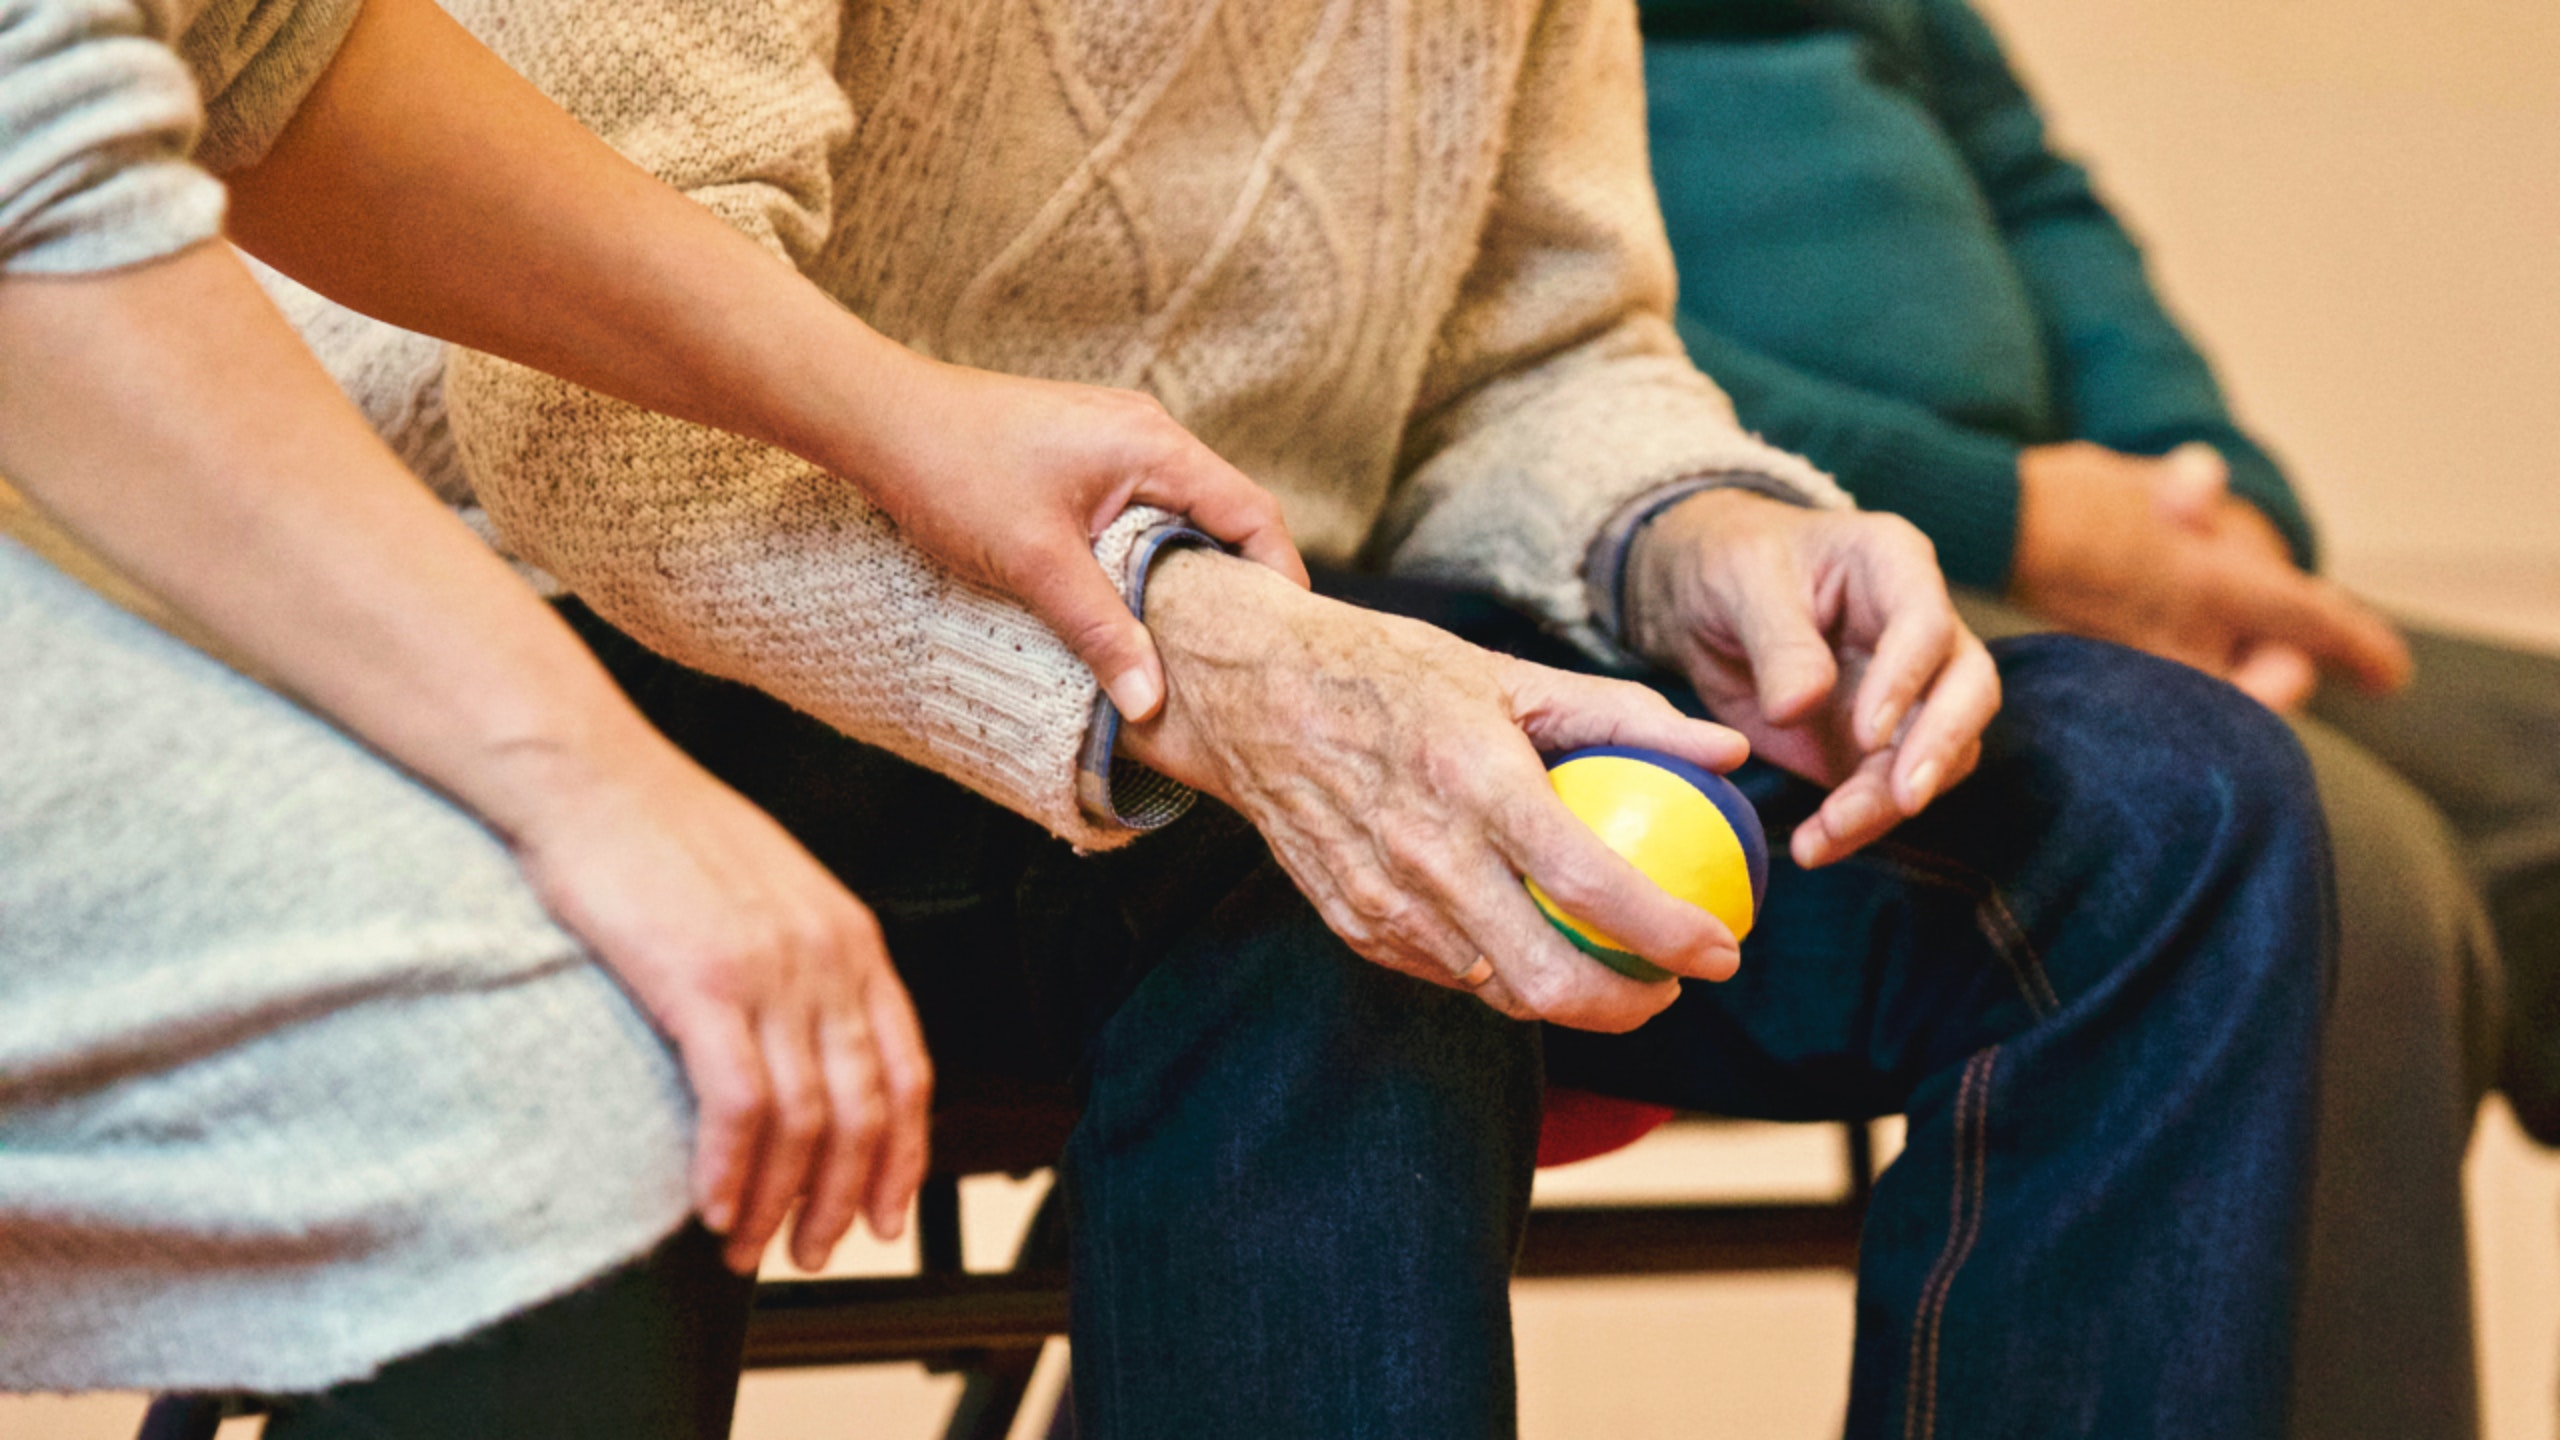 Tips for New Caregivers to Avoid Burnout